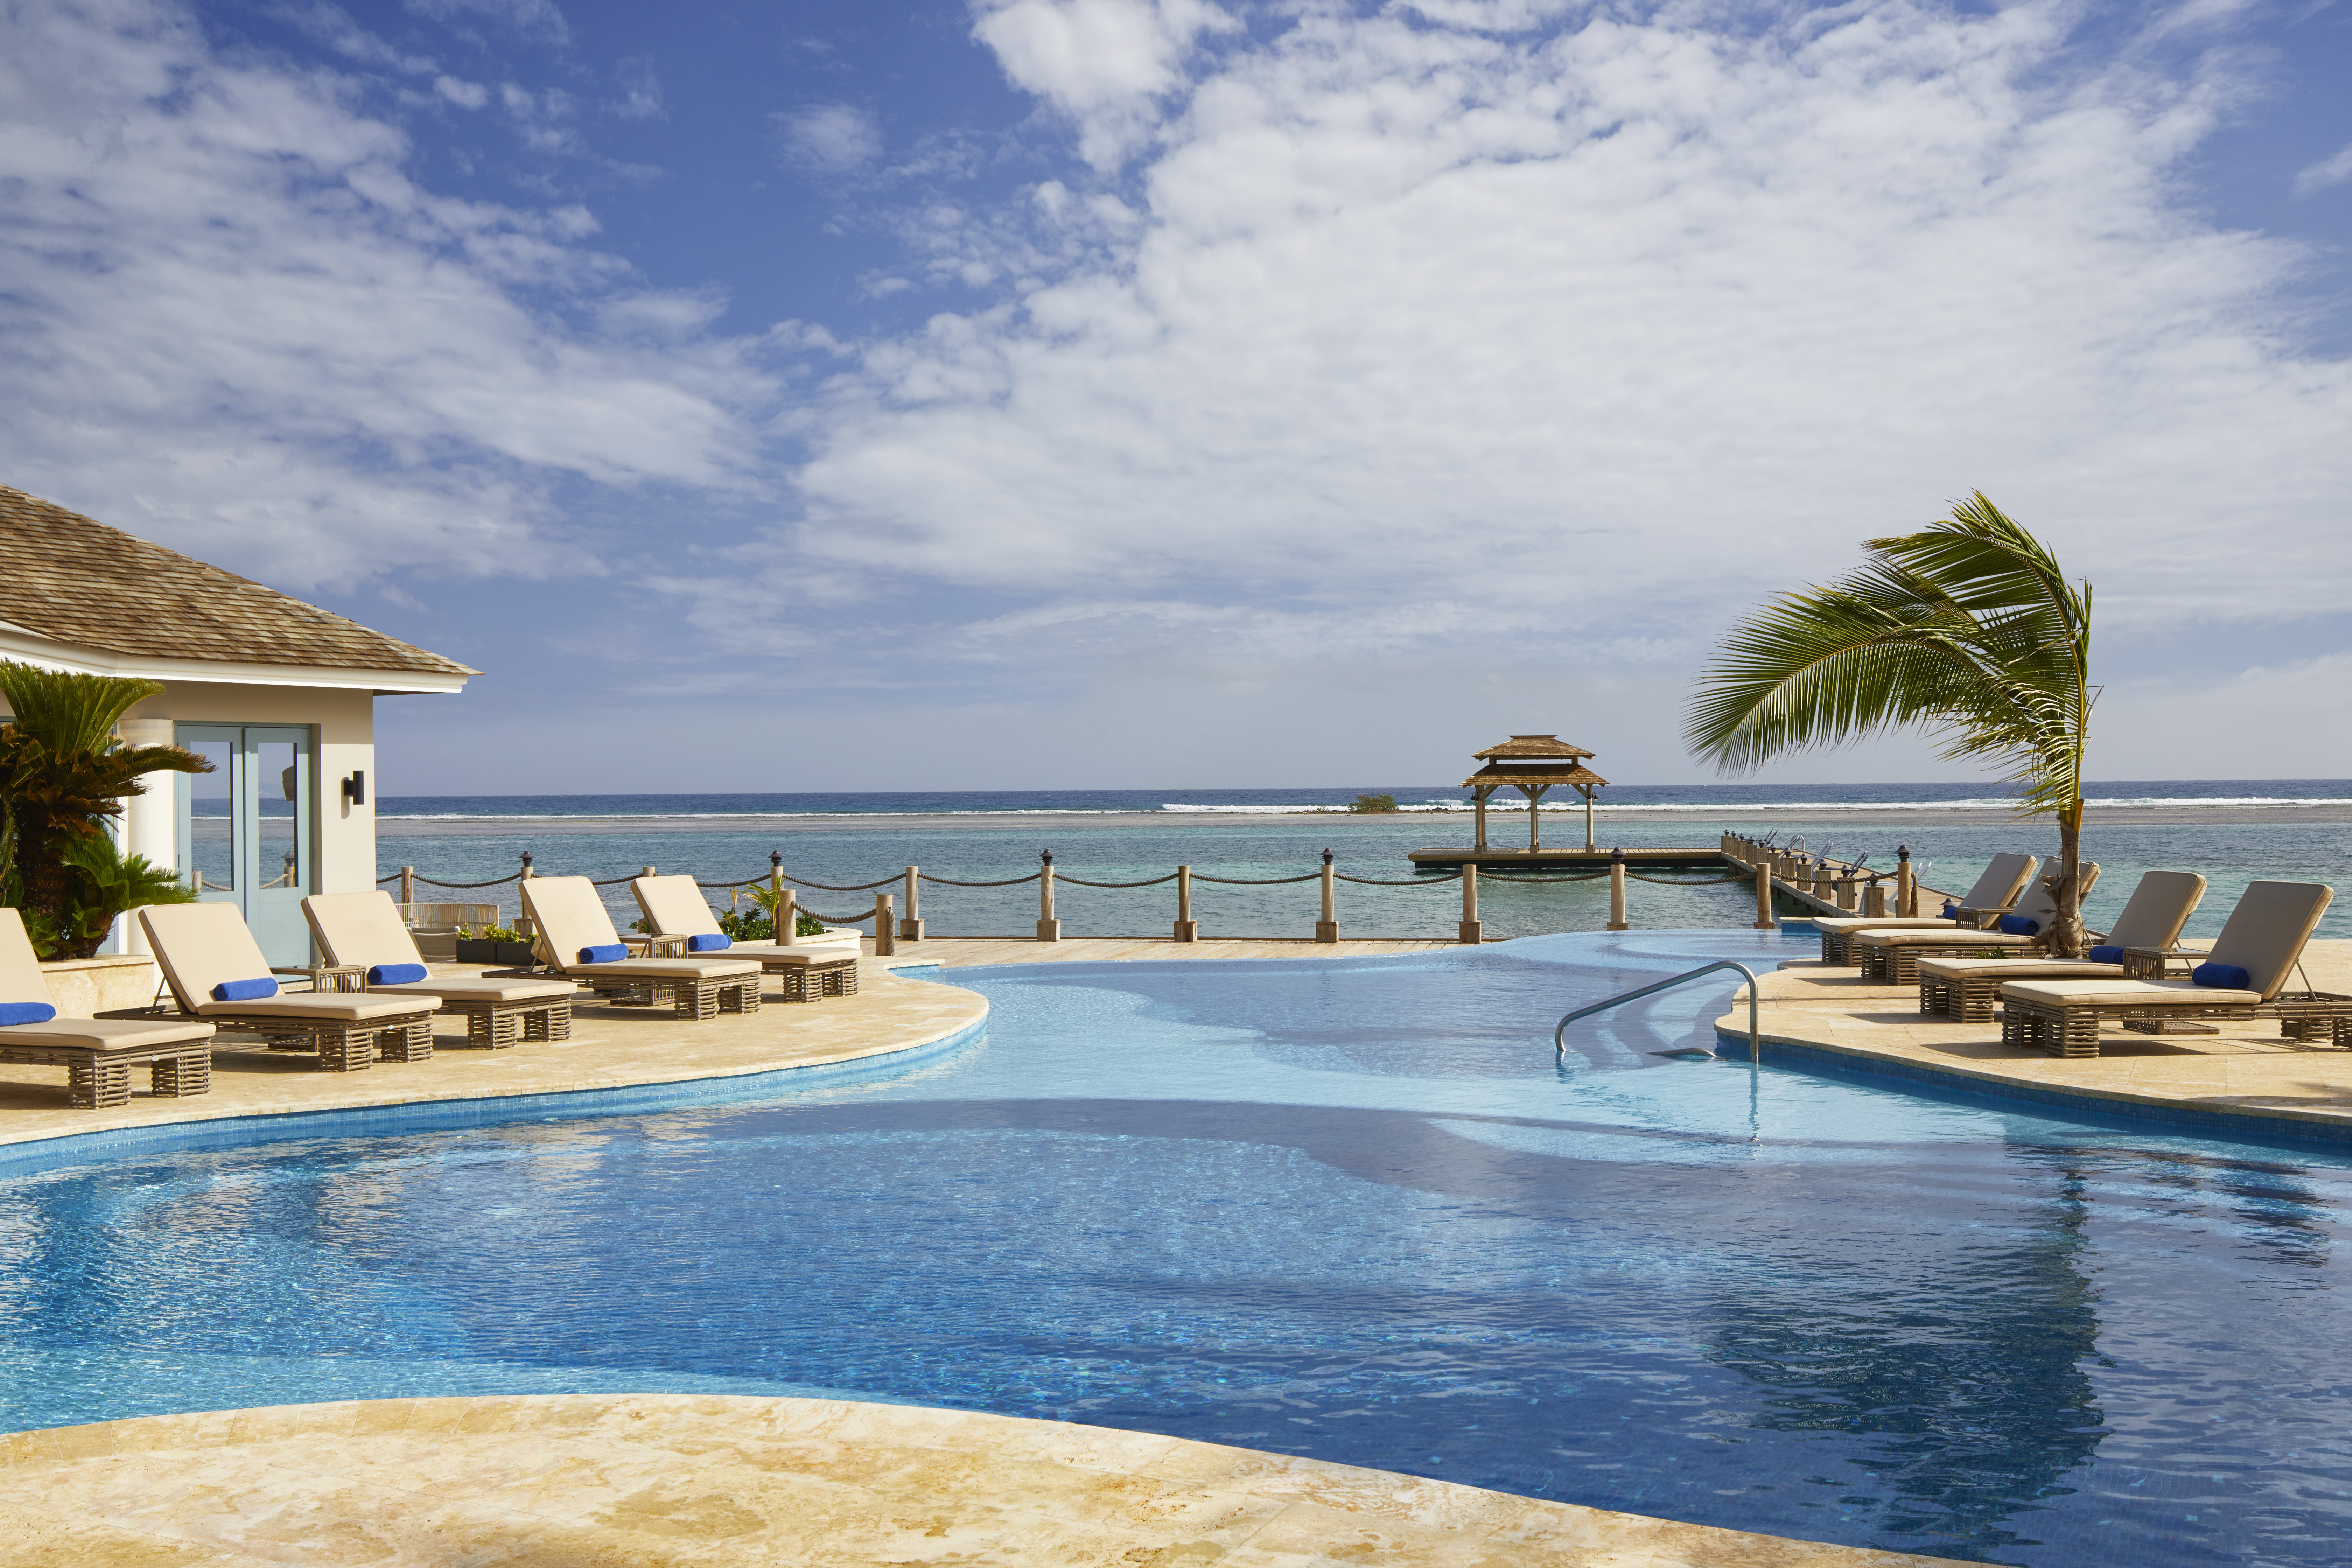 Travel Agency All-Inclusive Resort Zoetry Montego Bay 07